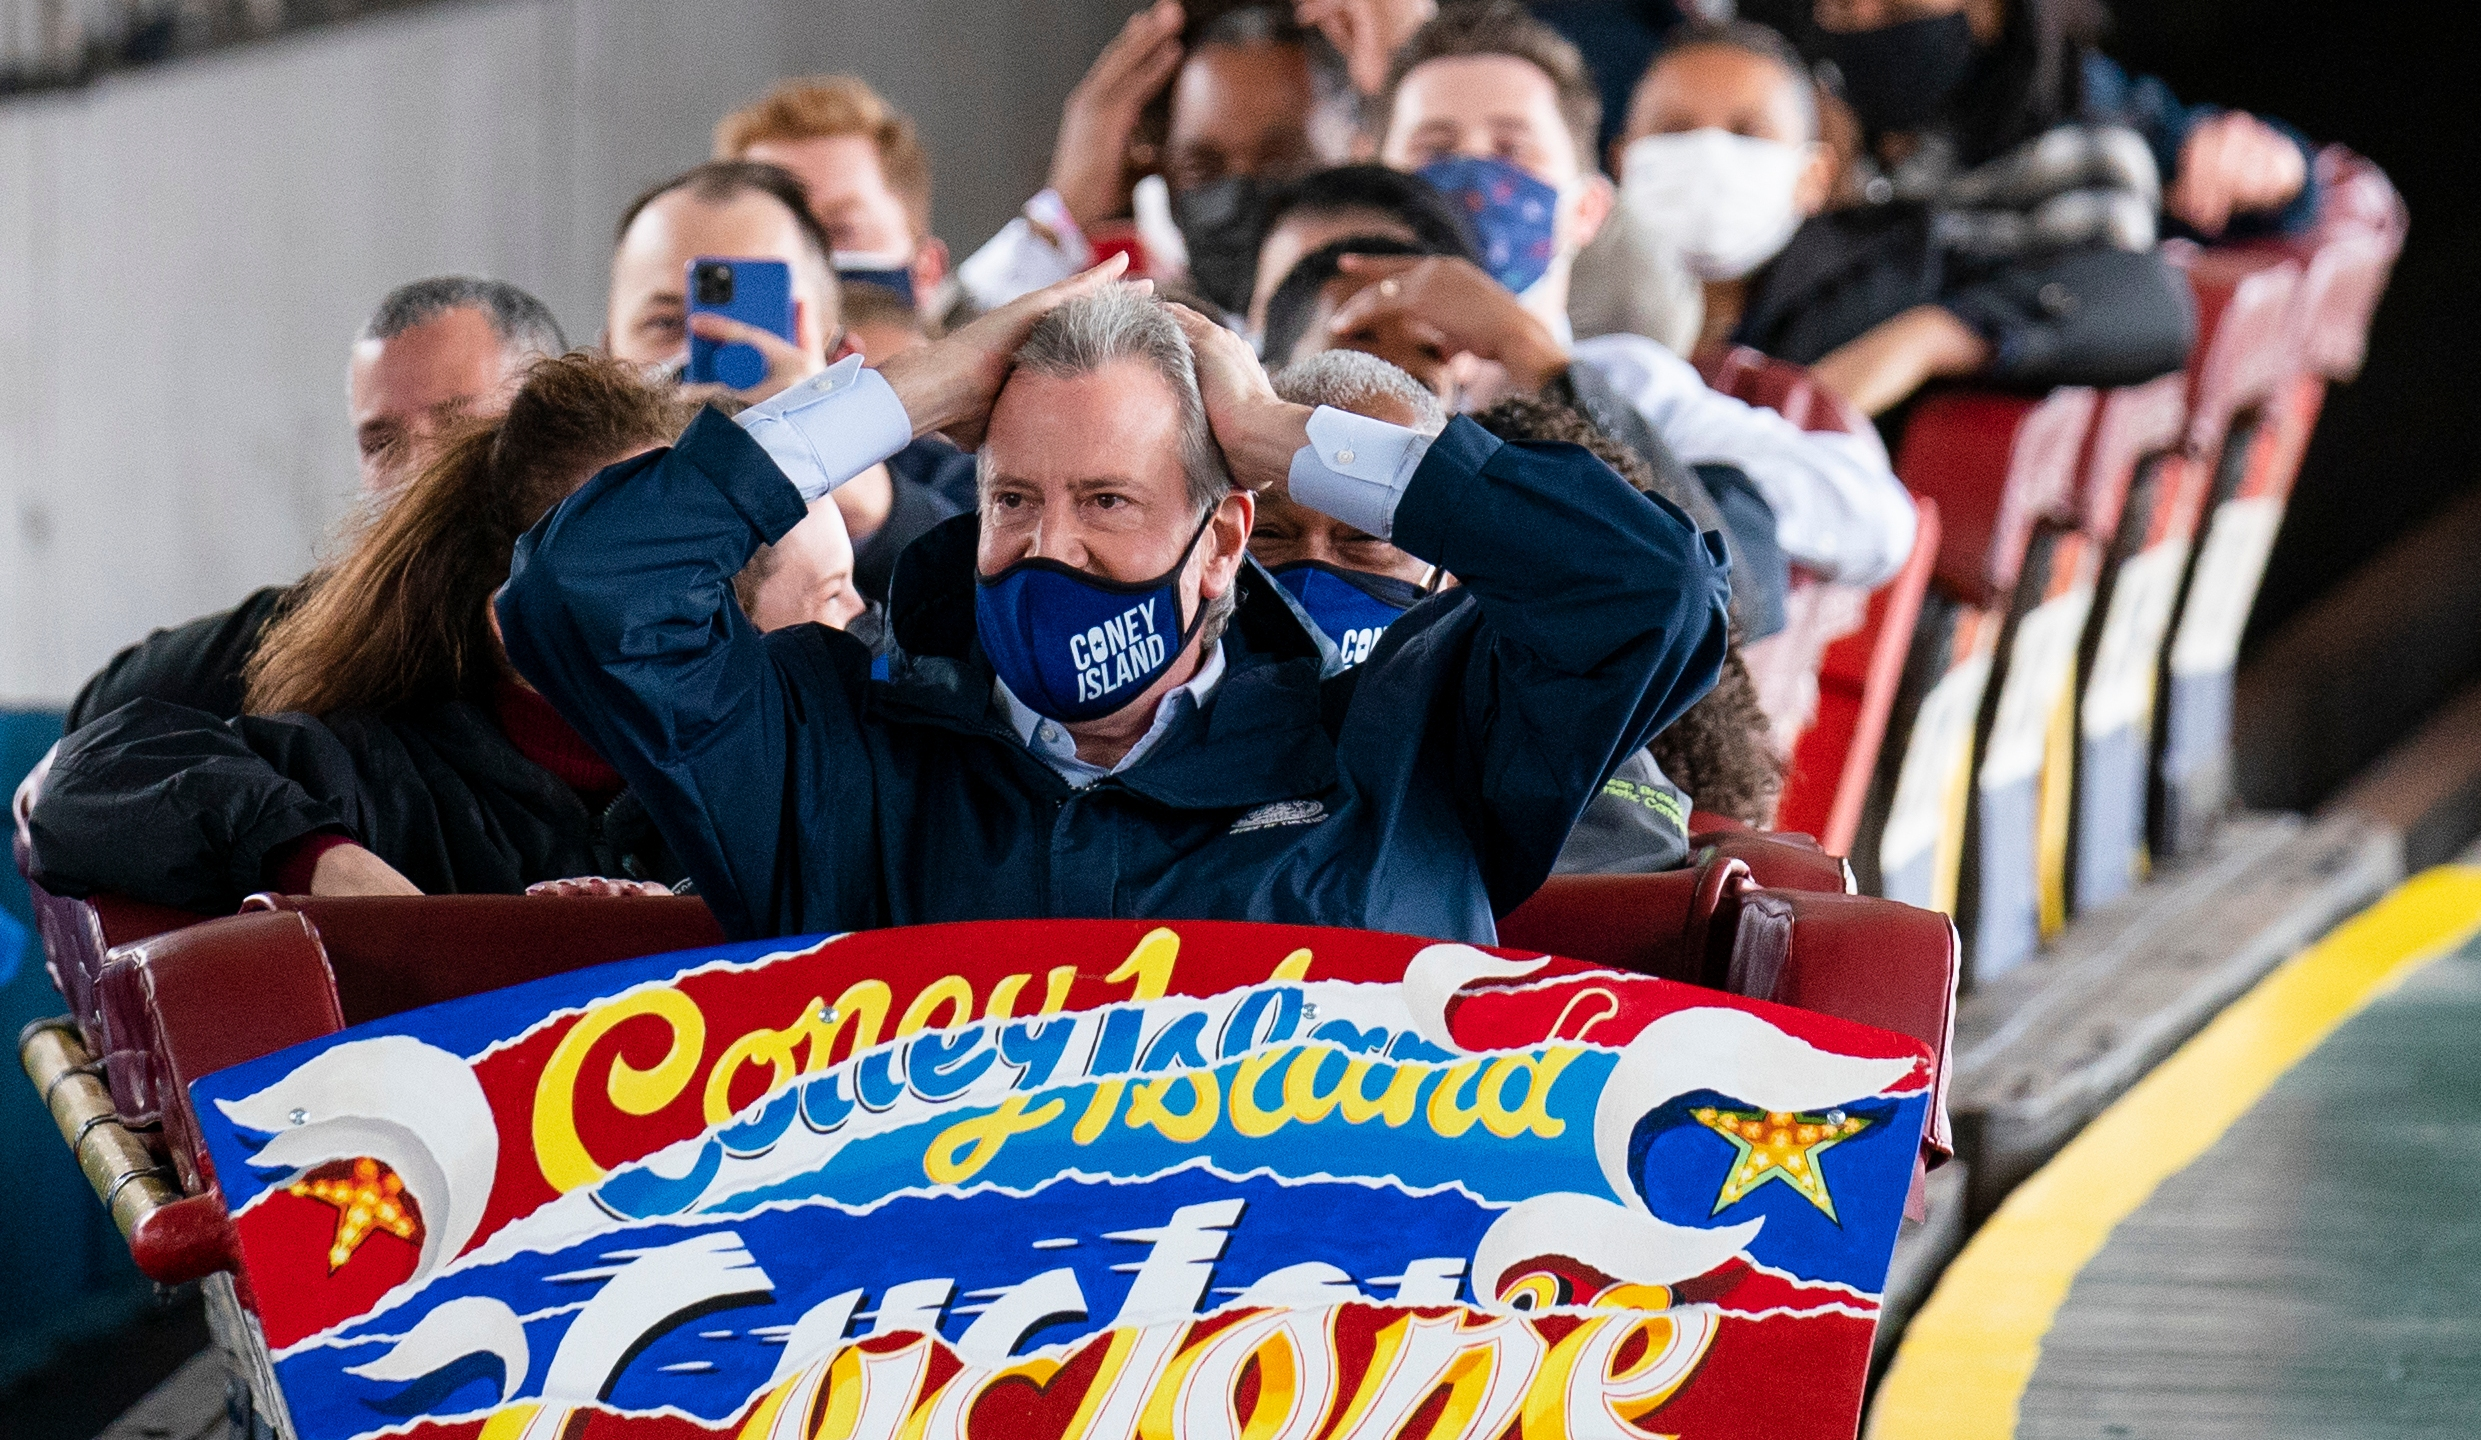 New York City Mayor Bill de Blasio finishes a ride on the Cyclone rollercoaster after attending the ribbon cutting and seasonal opening of the Coney Island amusement park area on April 9, 2021, in the Brooklyn borough of New York. (John Minchillo / Associated Press)